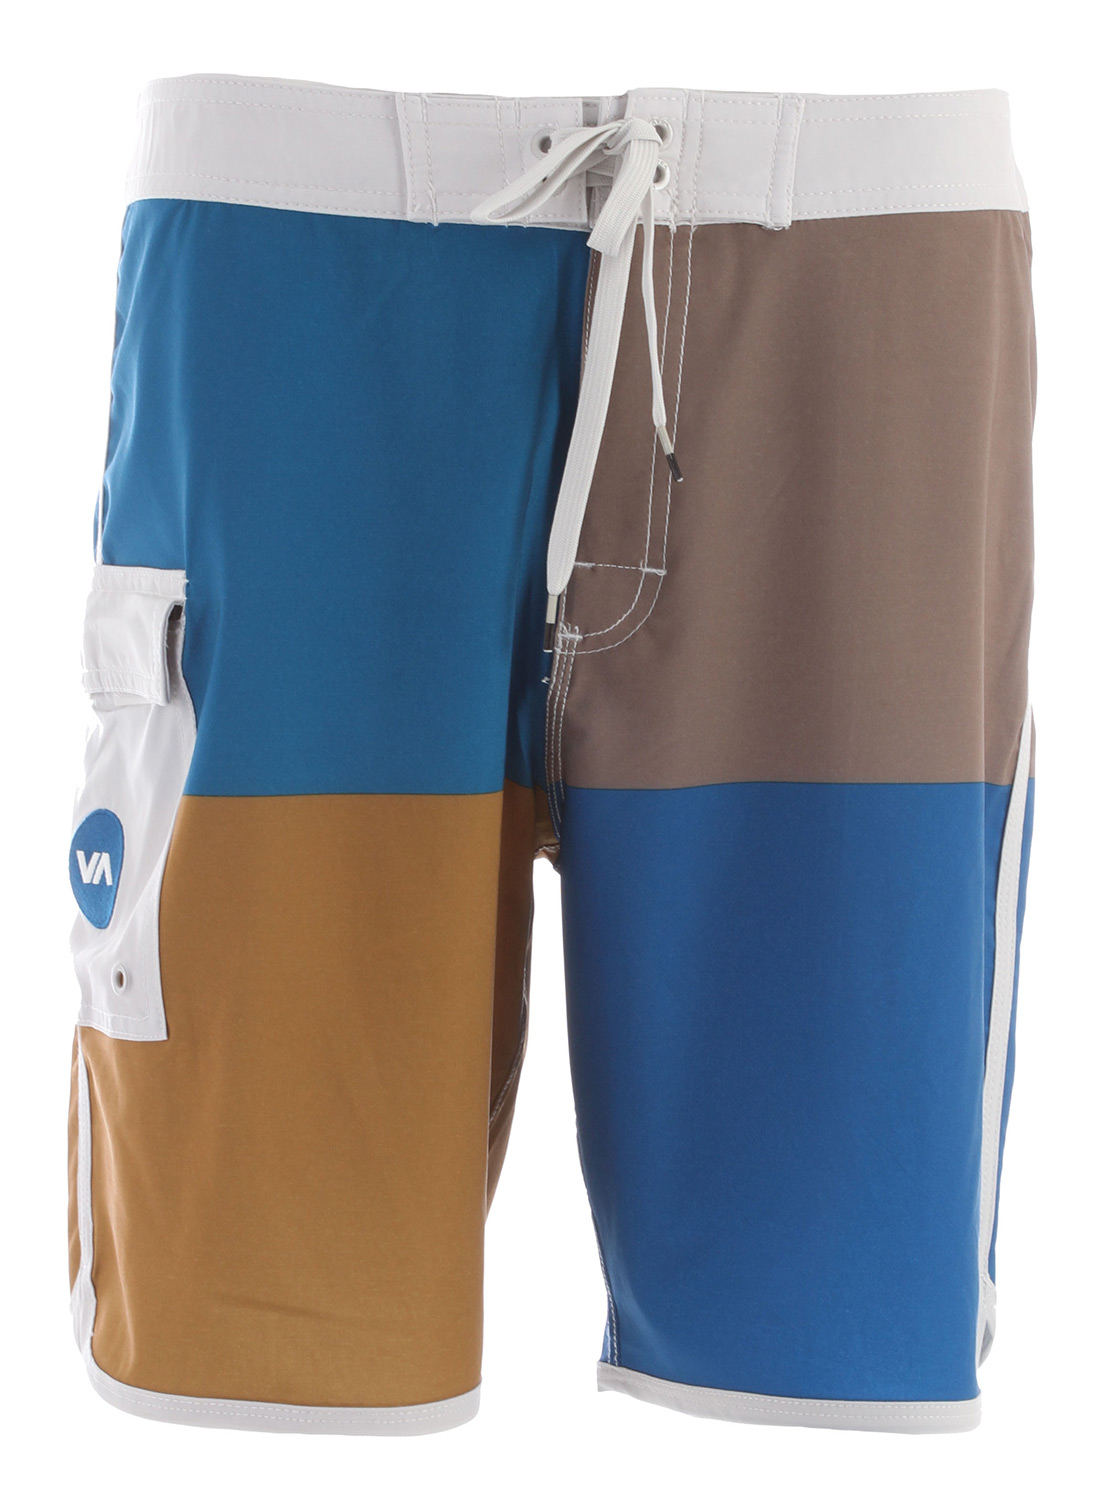 "Surf Key Features of the RVCA Quadro Boardshorts: 85% Polyester/15% Spandex 4 Way Performance Stretch. Print at body. Zipper with drawcord and hook & loop closure at fly. Triple needle stitch on rises. Patch pocket at wearers right side with flap, zipper, and hook & loop closure. RVCA screenprint at wearers lower left side. Circle VA embroidery at pocket. Outseam: 19"" - $44.95"